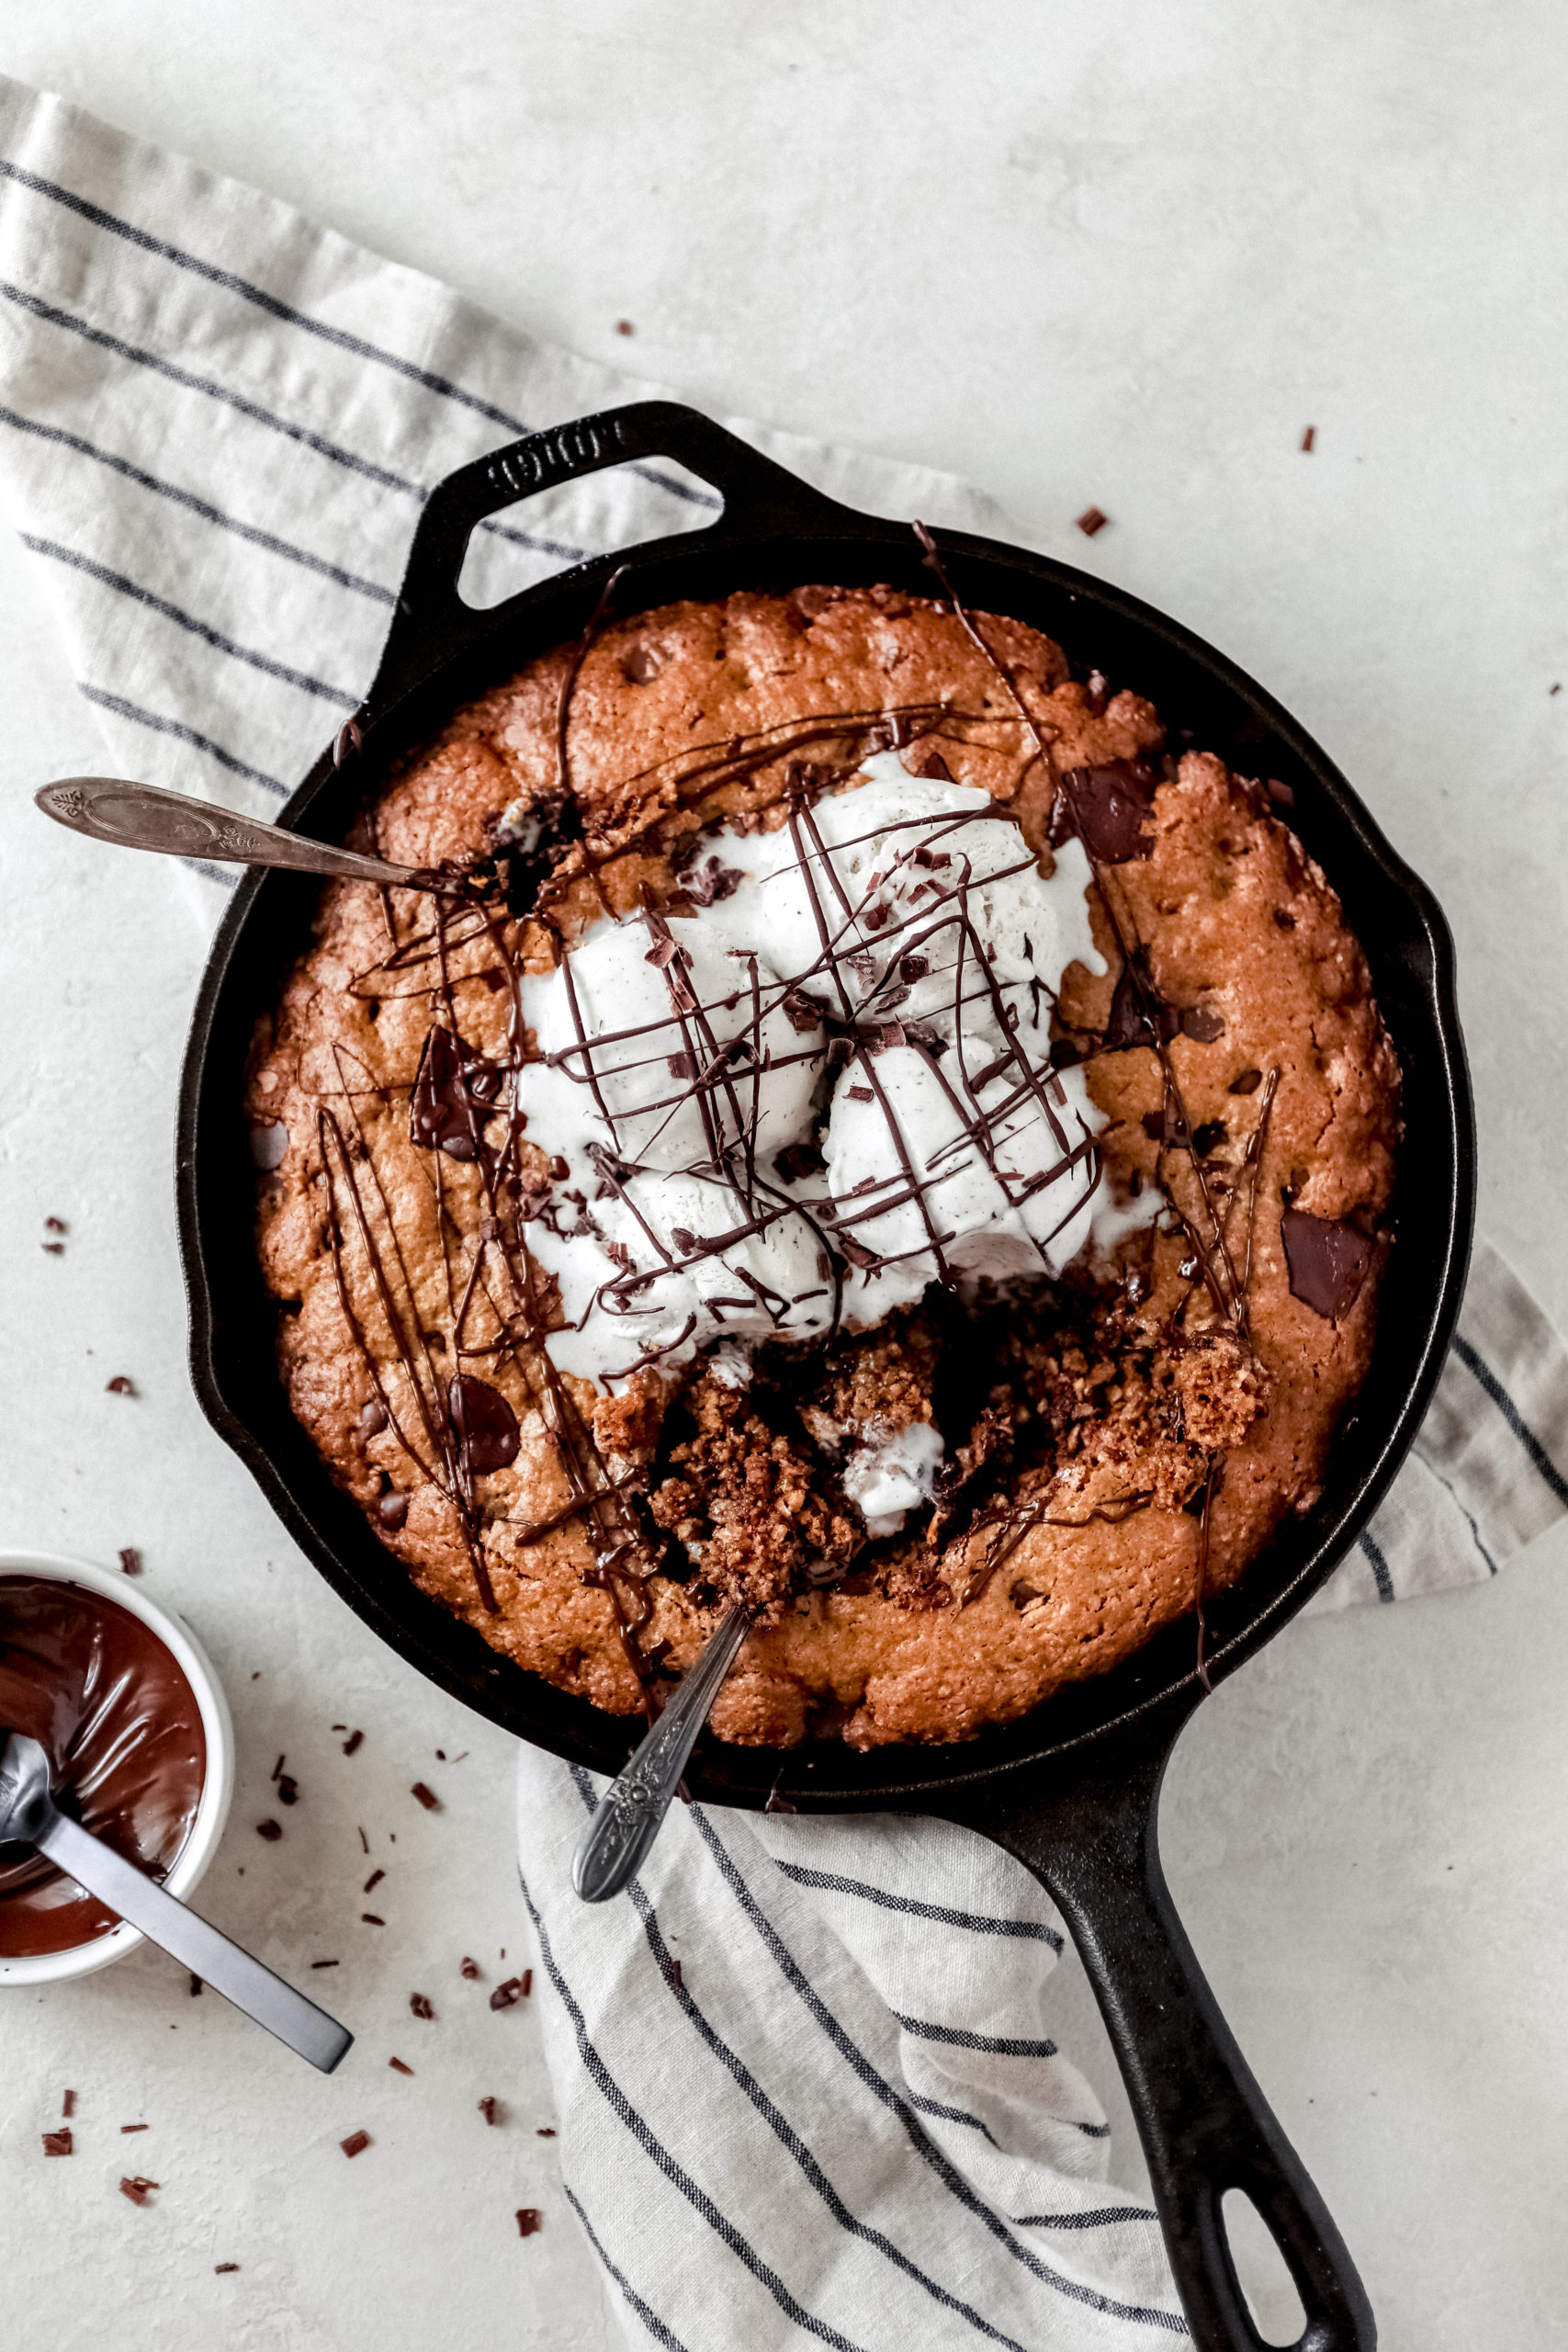 Peanut Butter Chocolate Chip Oatmeal Skillet: Jessi's Kitchen